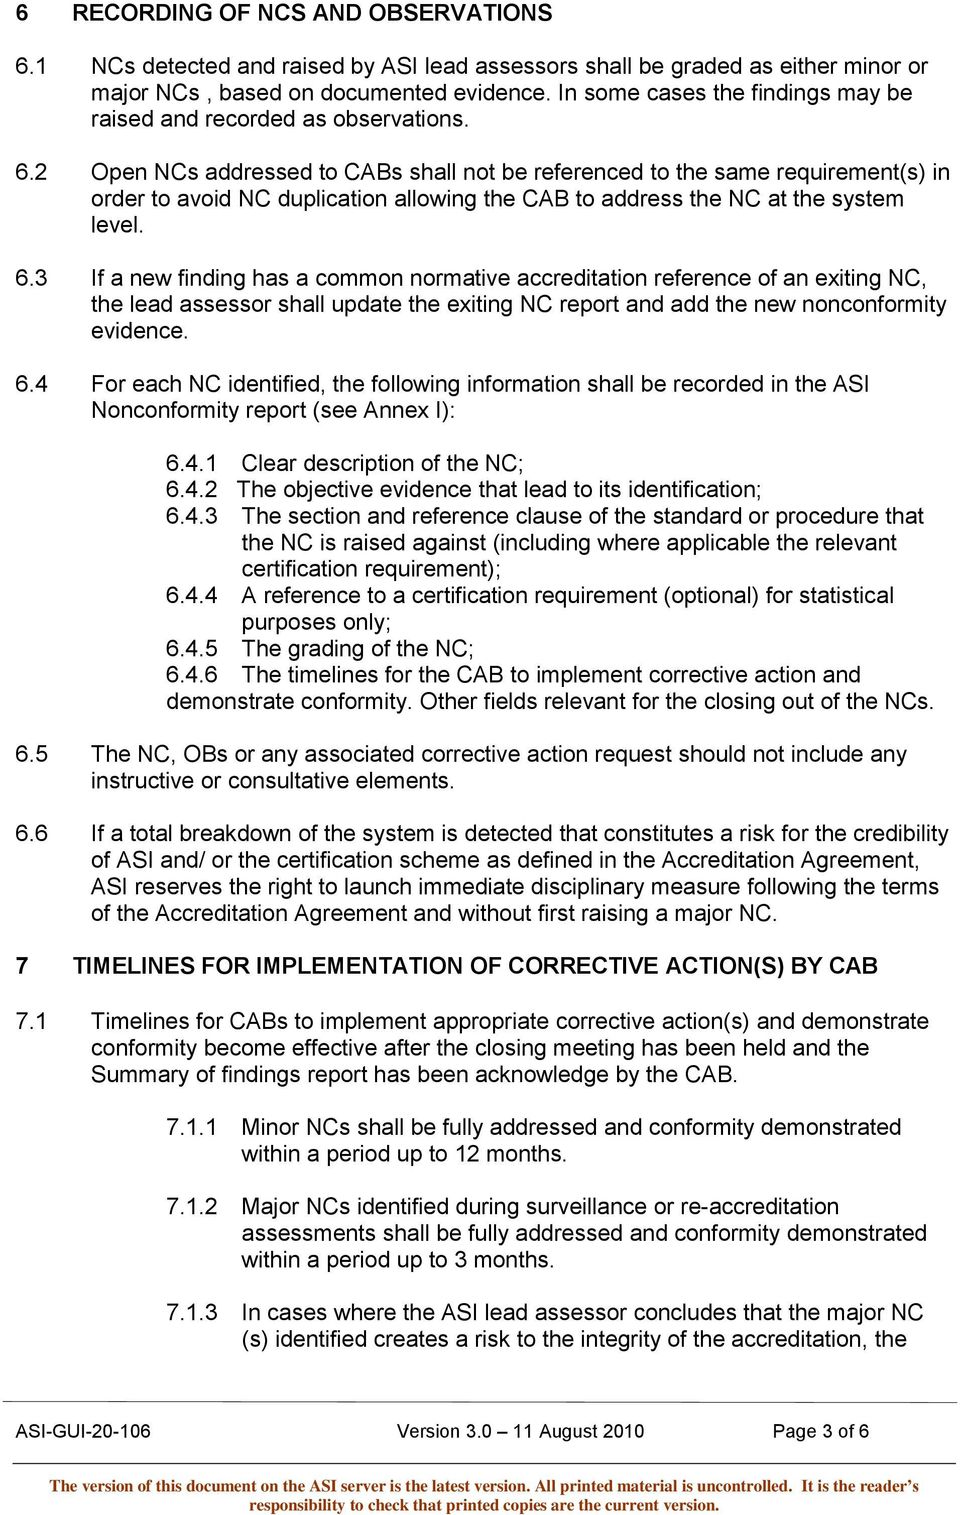 2 Open NCs addressed to CABs shall not be referenced to the same requirement(s) in order to avoid NC duplication allowing the CAB to address the NC at the system level. 6.